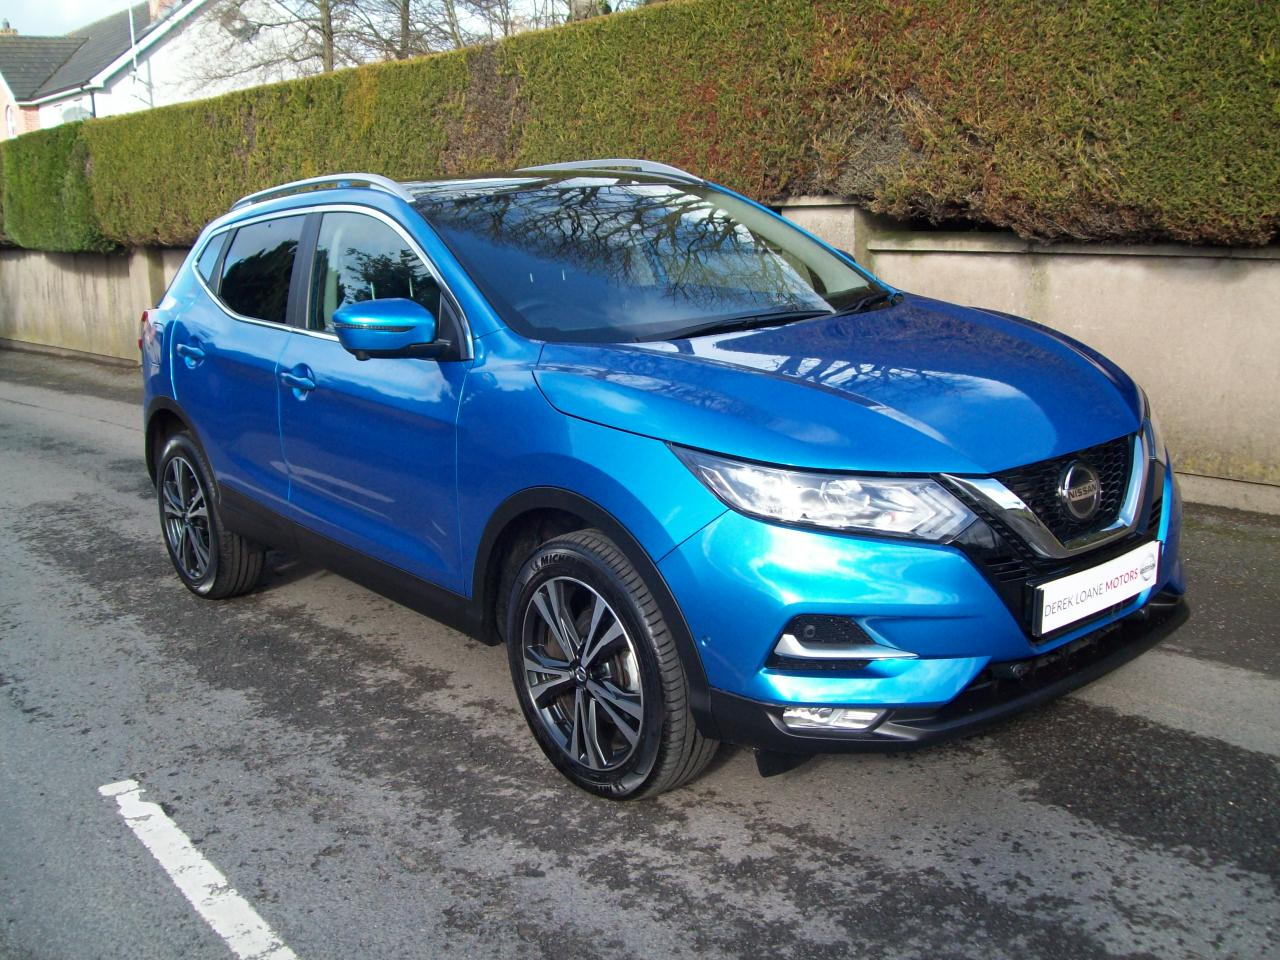 2020 Nissan Qashqai  Manual – Derek Loane Motors